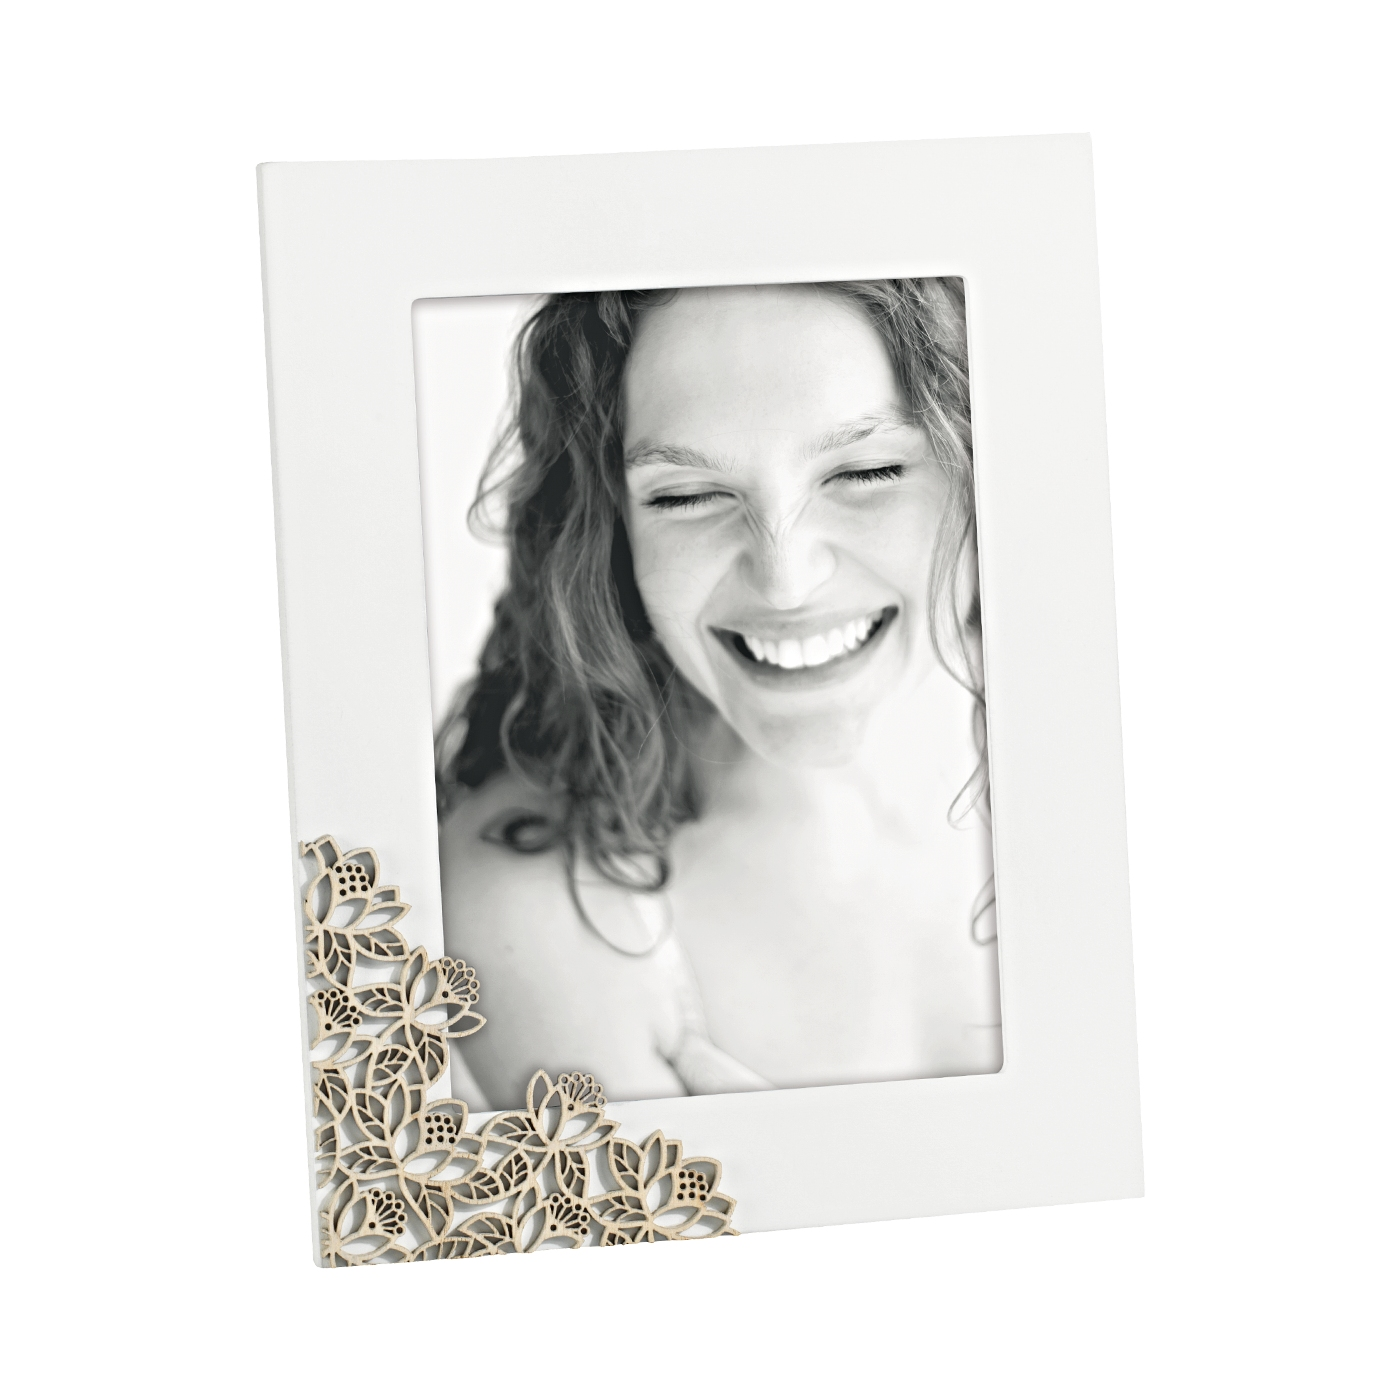 A770  FRAME WOODEN LACE WHITE  13x18